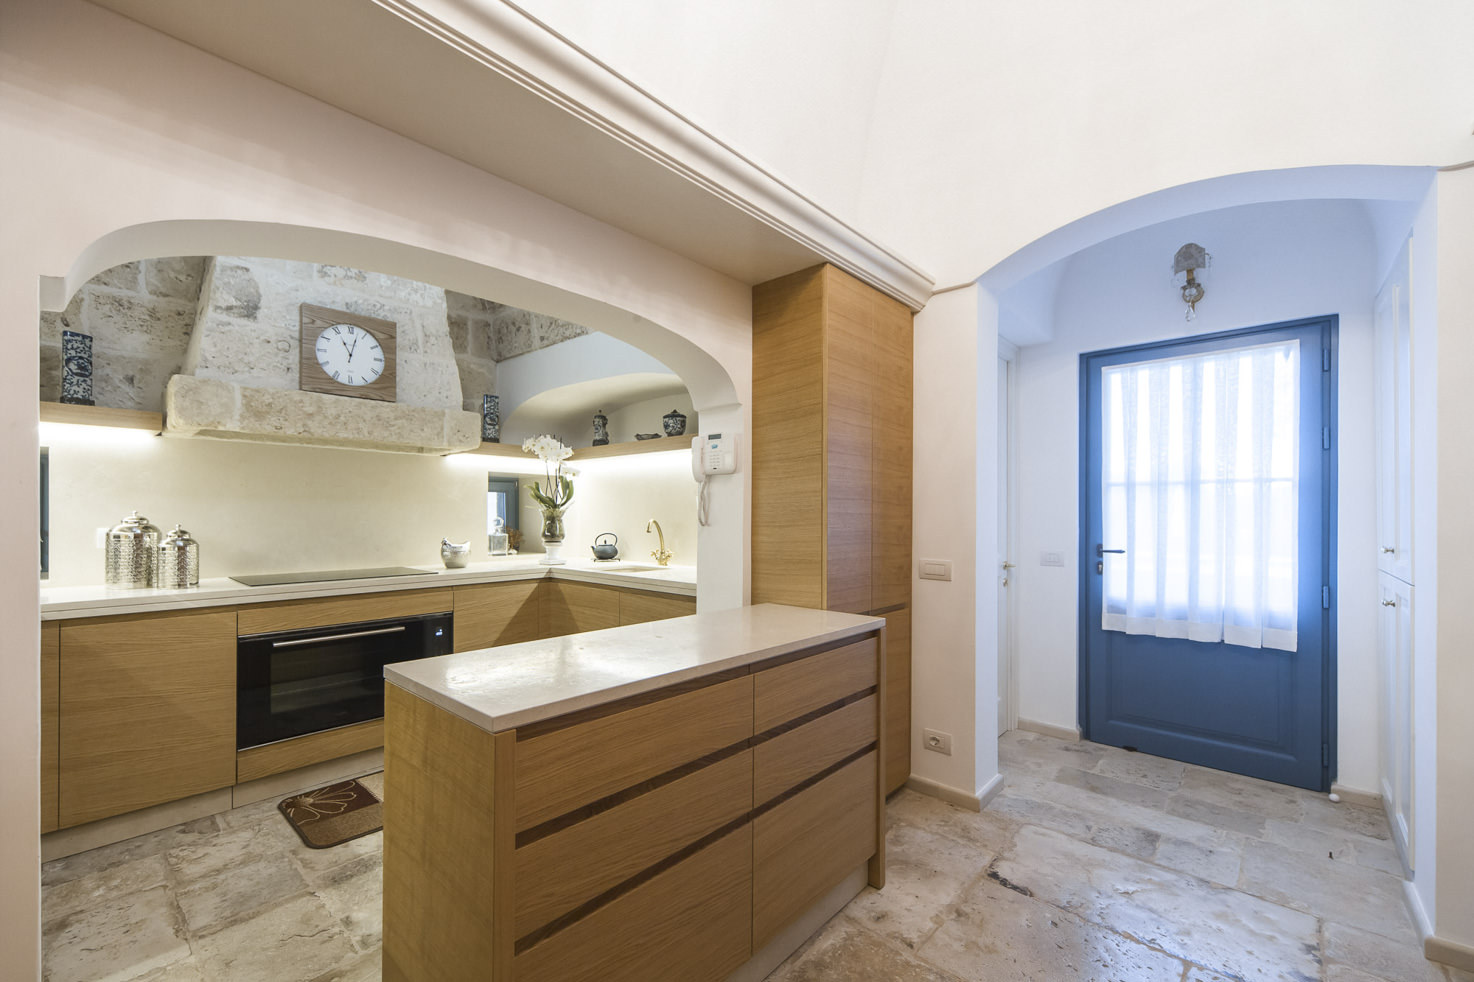 Kitchen in one of the suites